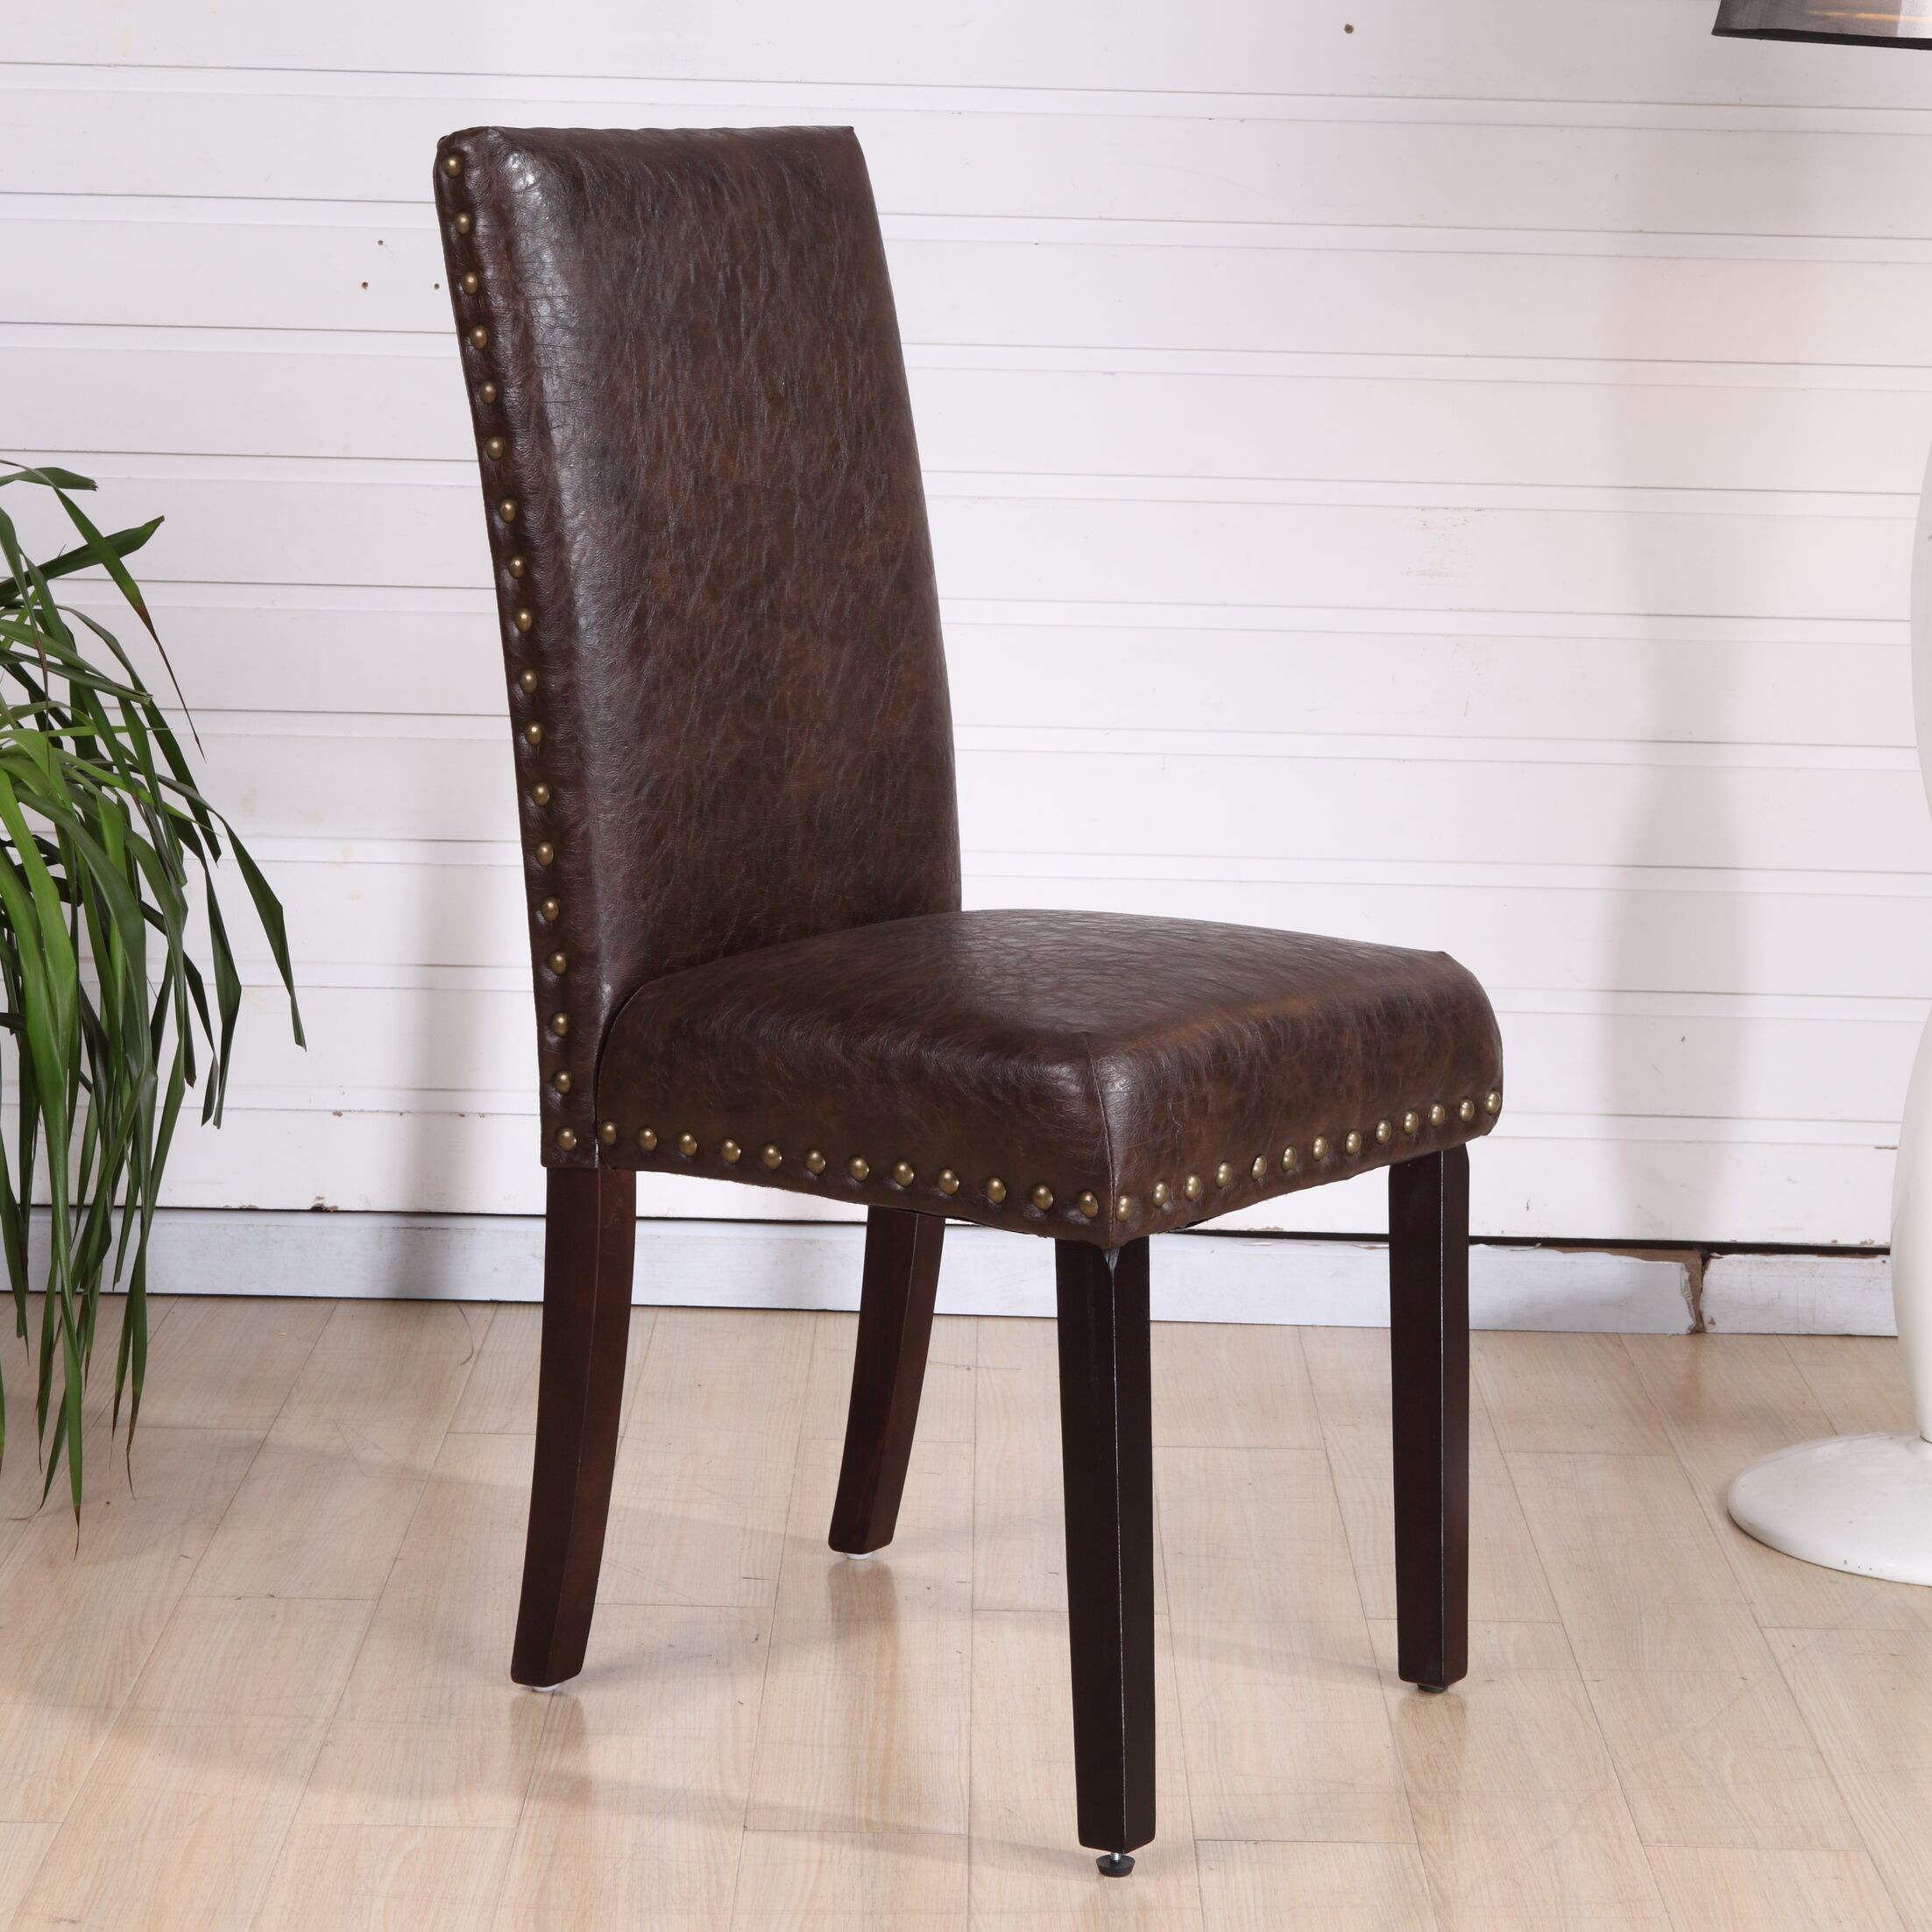 Classic Genuine Leather Upholstered Dining Chair Upholstery Color: Espresso